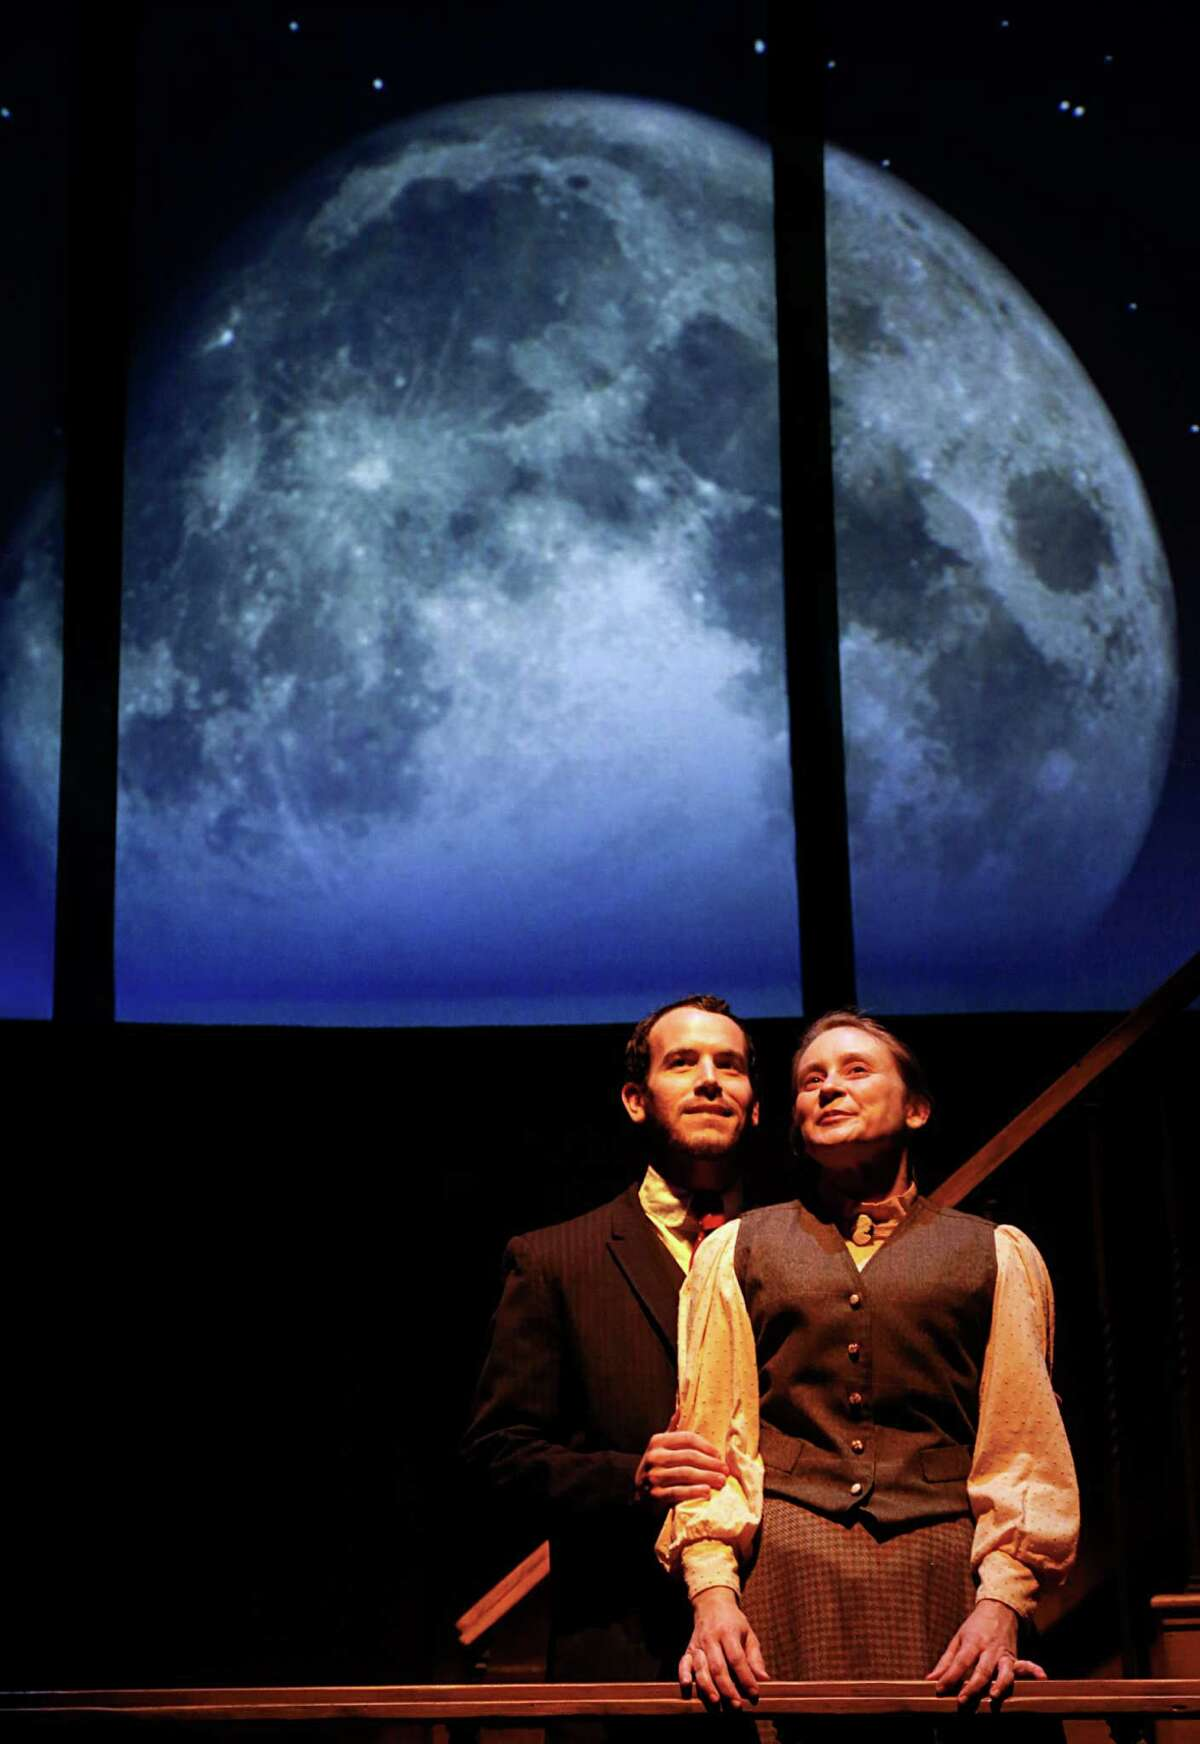 """James Monaghan left, as """"Peter Shaw"""", and Shannon Emerick right, as """"Henrietta Leavitt"""" during Main Street Theater's production of the play Silent Sky"""